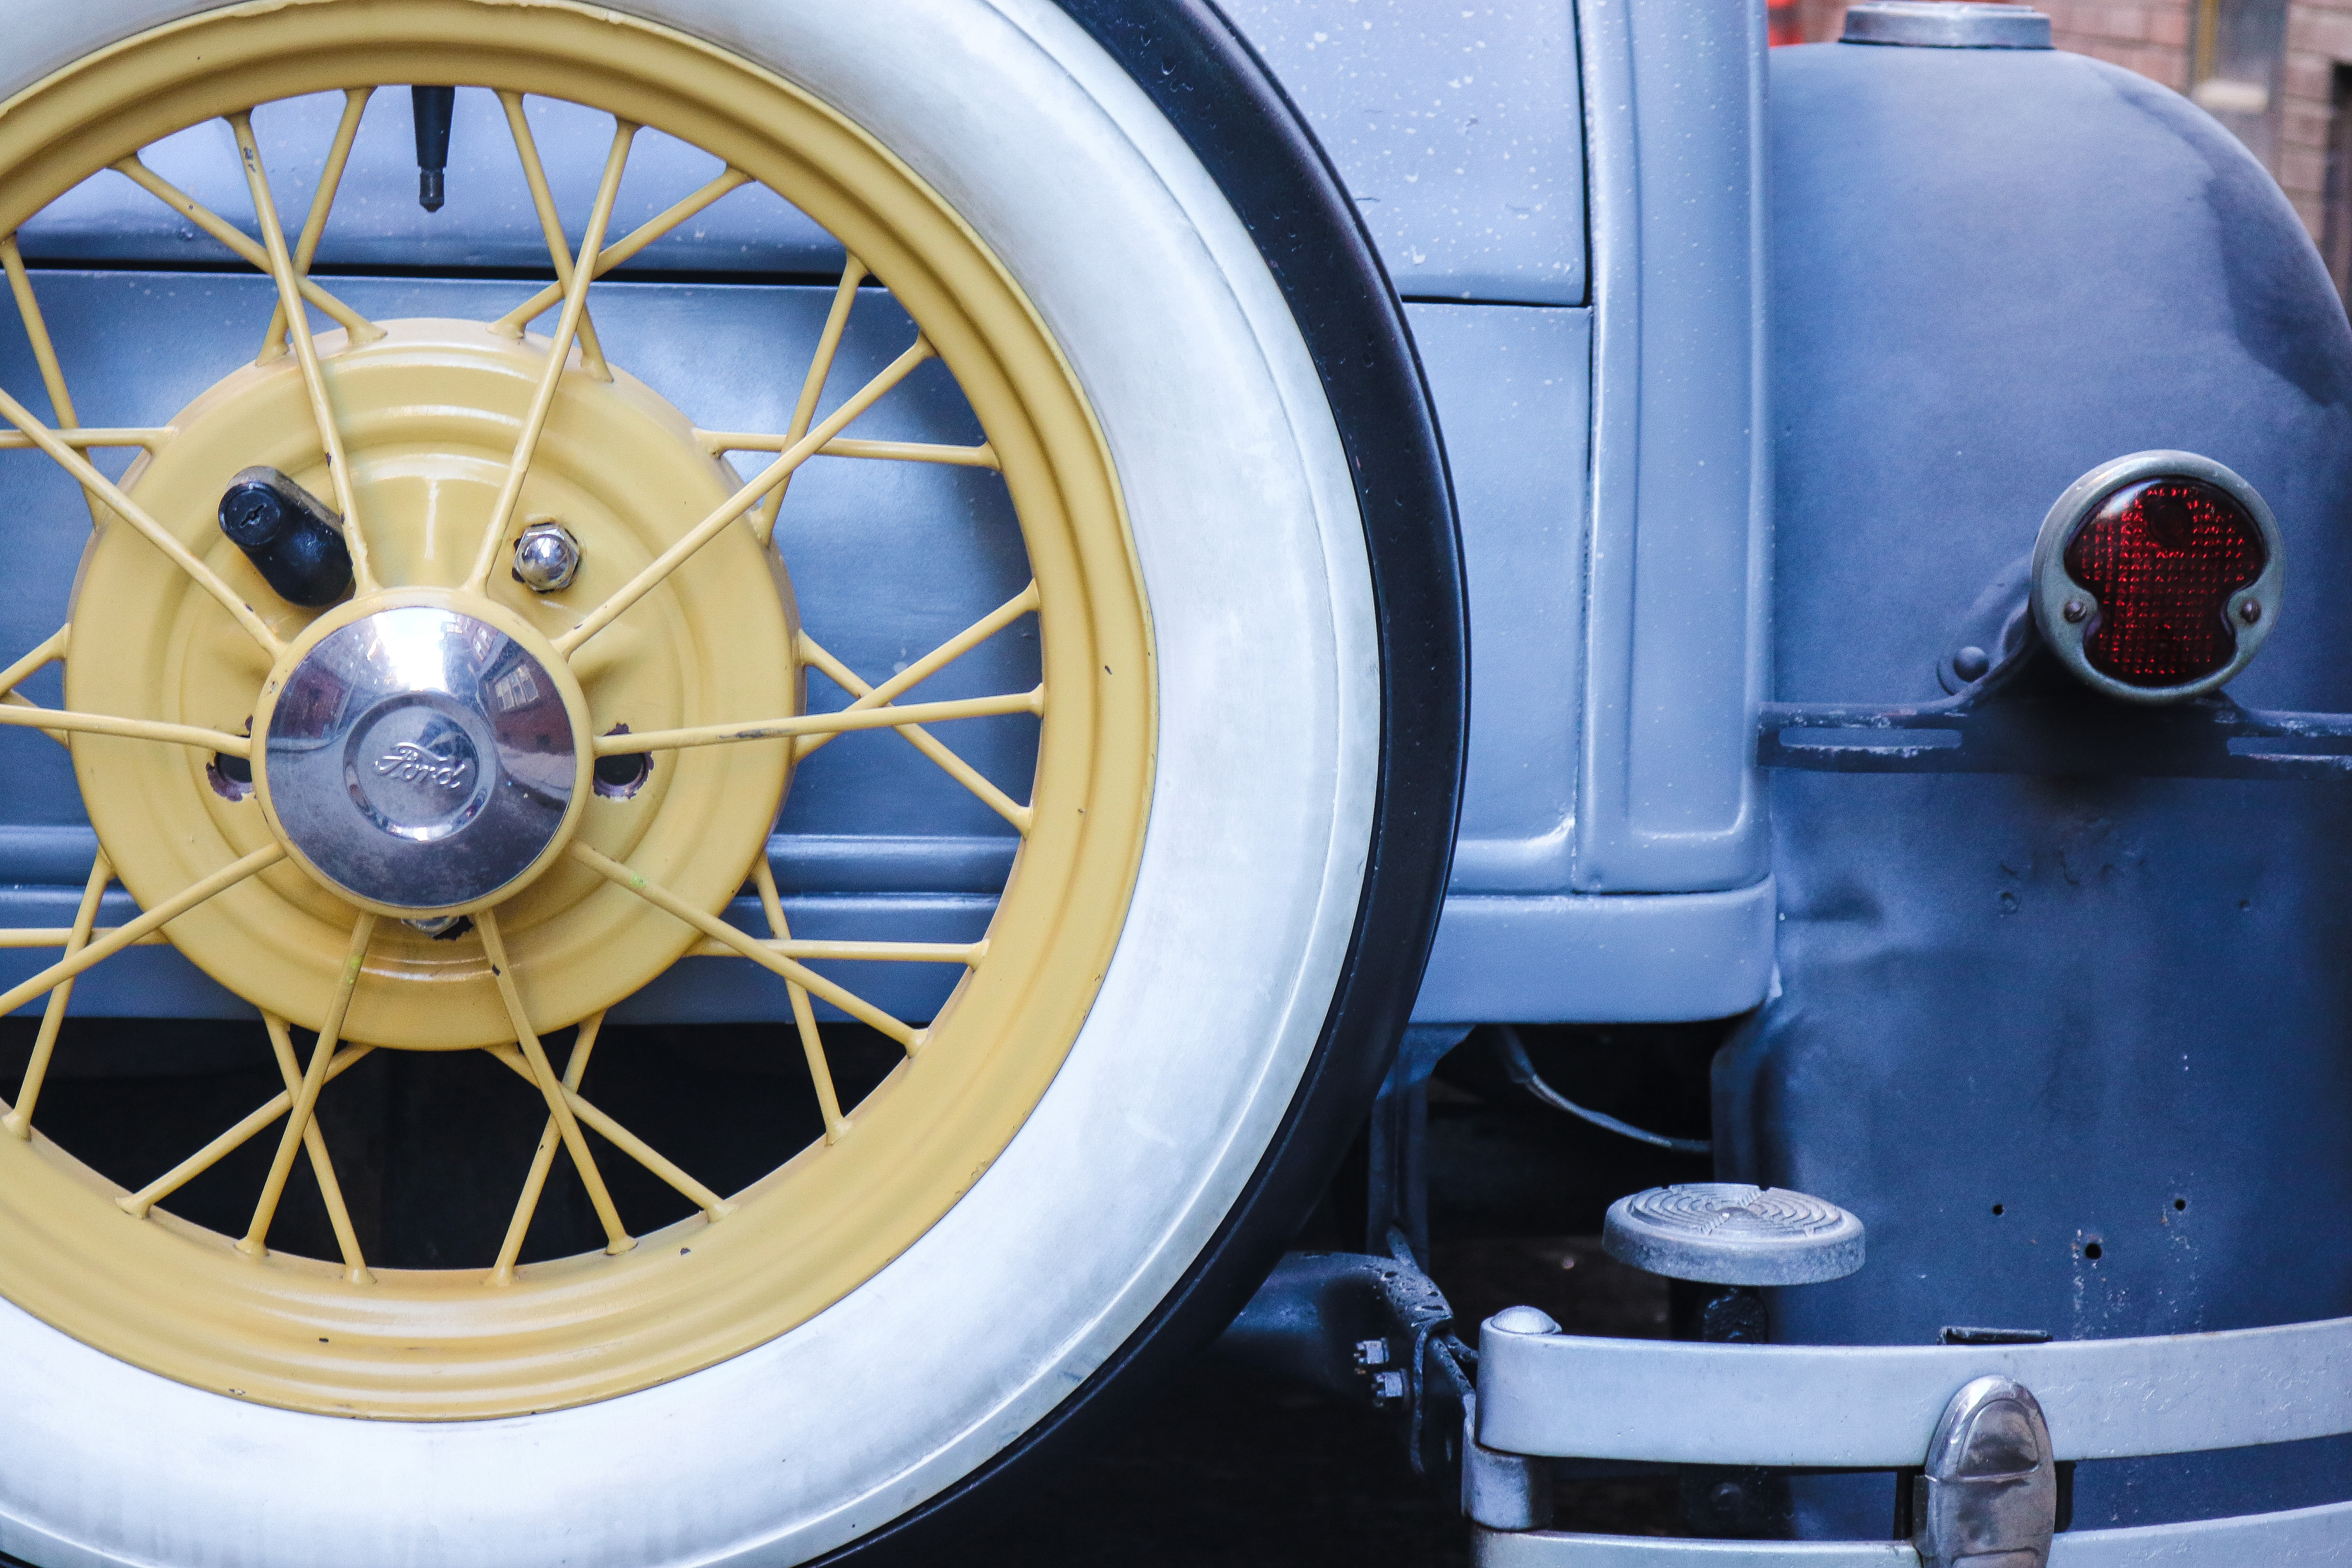 Vintage, blue car with classic white rim tire mounted on back